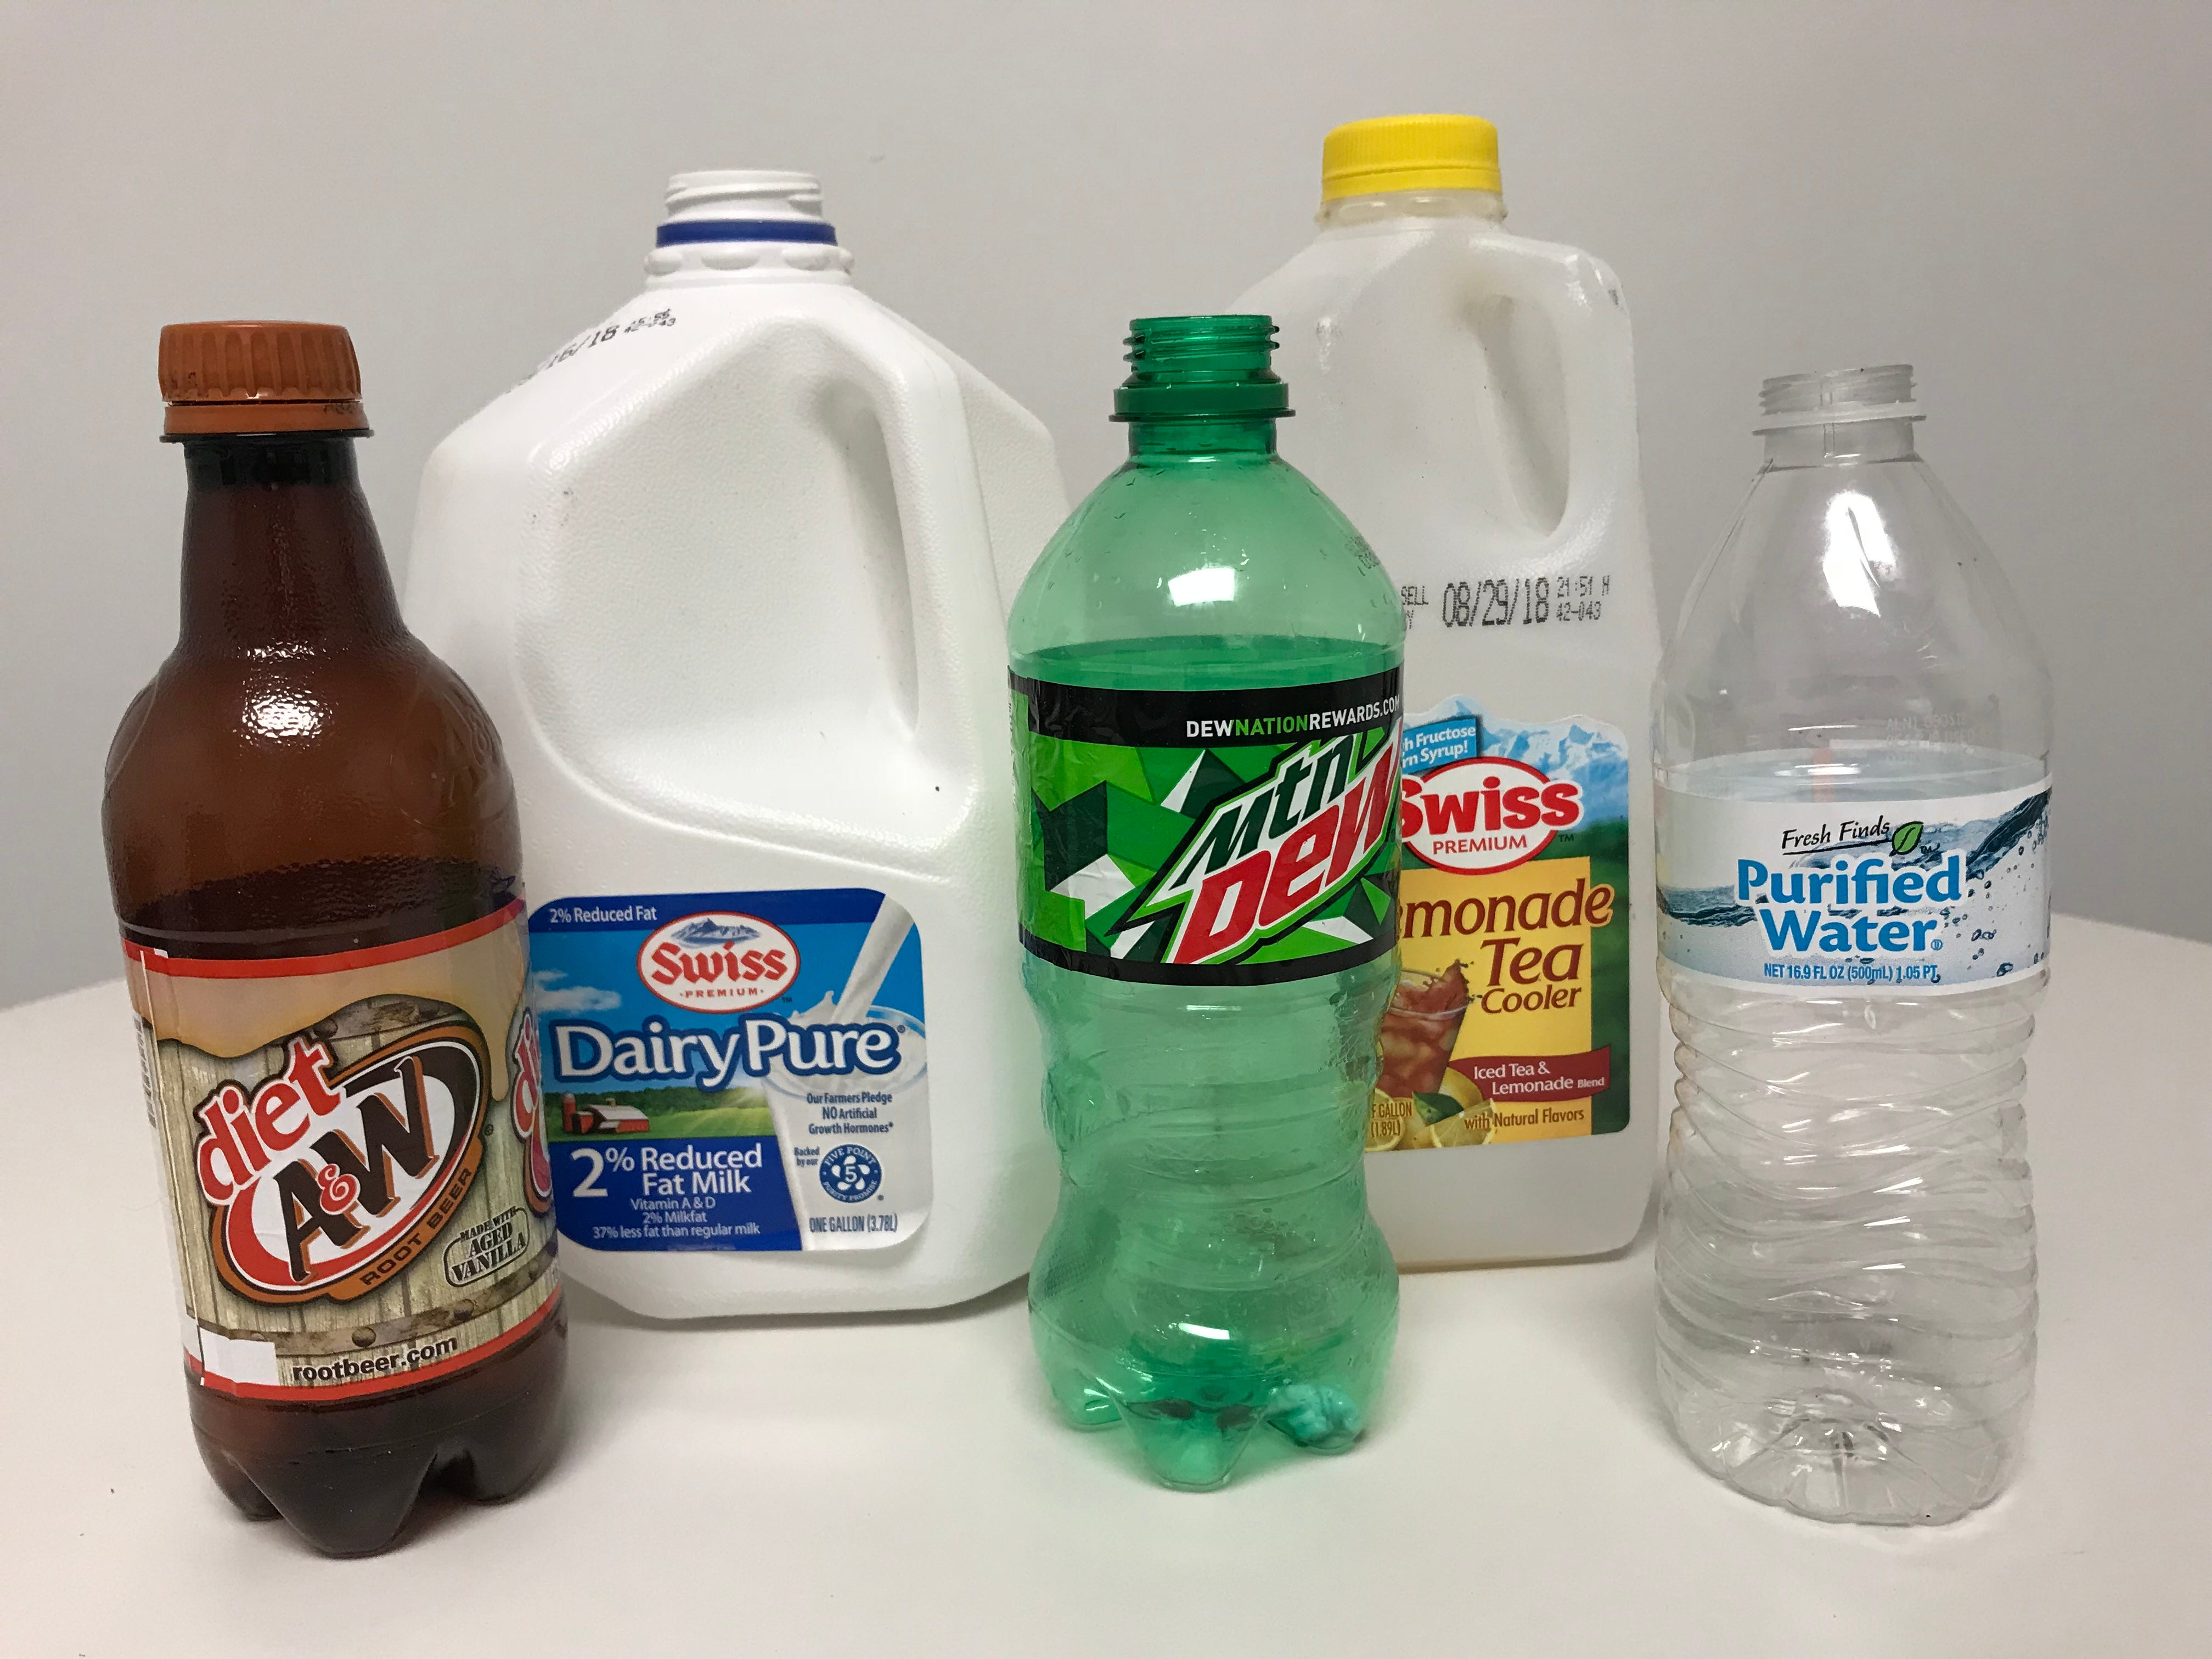 Examples of plastic products that can go into curbside recycling bins.